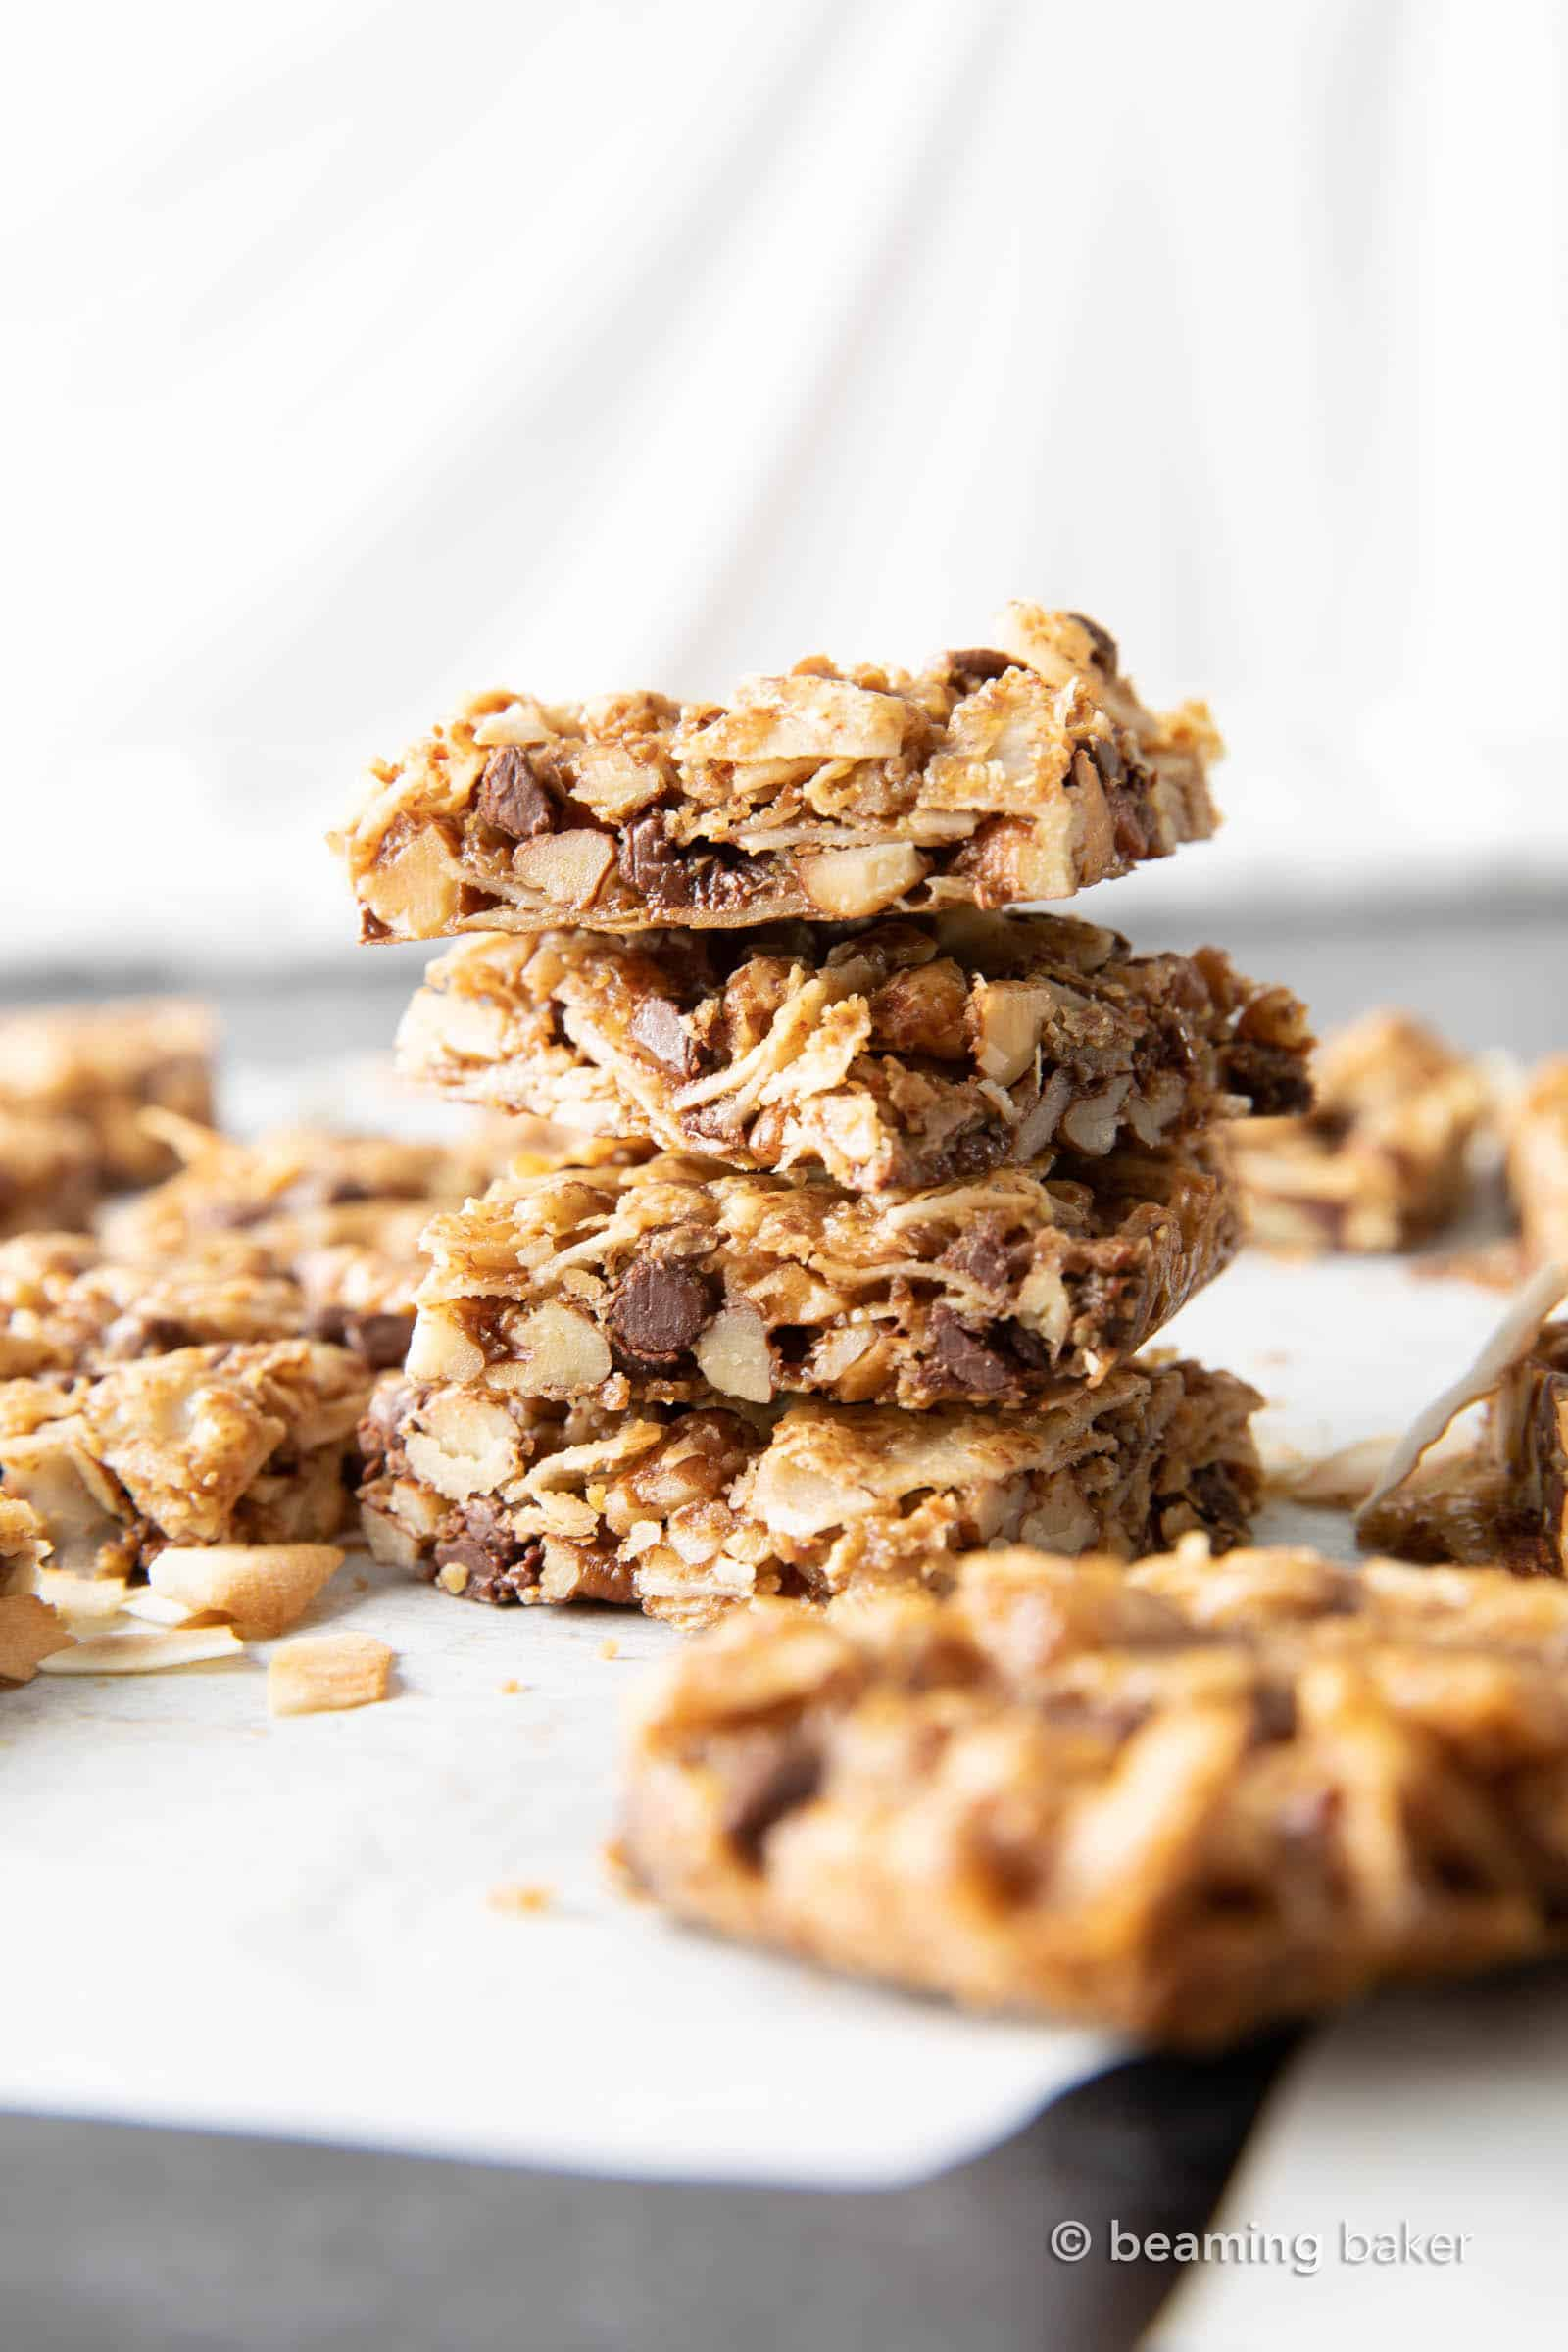 Coconut Granola Bars (Paleo): chewy & healthy homemade granola bars bursting with coconut & nuts! Deliciously healthy granola bars—Paleo, Grain-Free, Vegan, Gluten Free. #GranolaBars #Paleo #Healthy #Vegan | Recipe at BeamingBaker.com